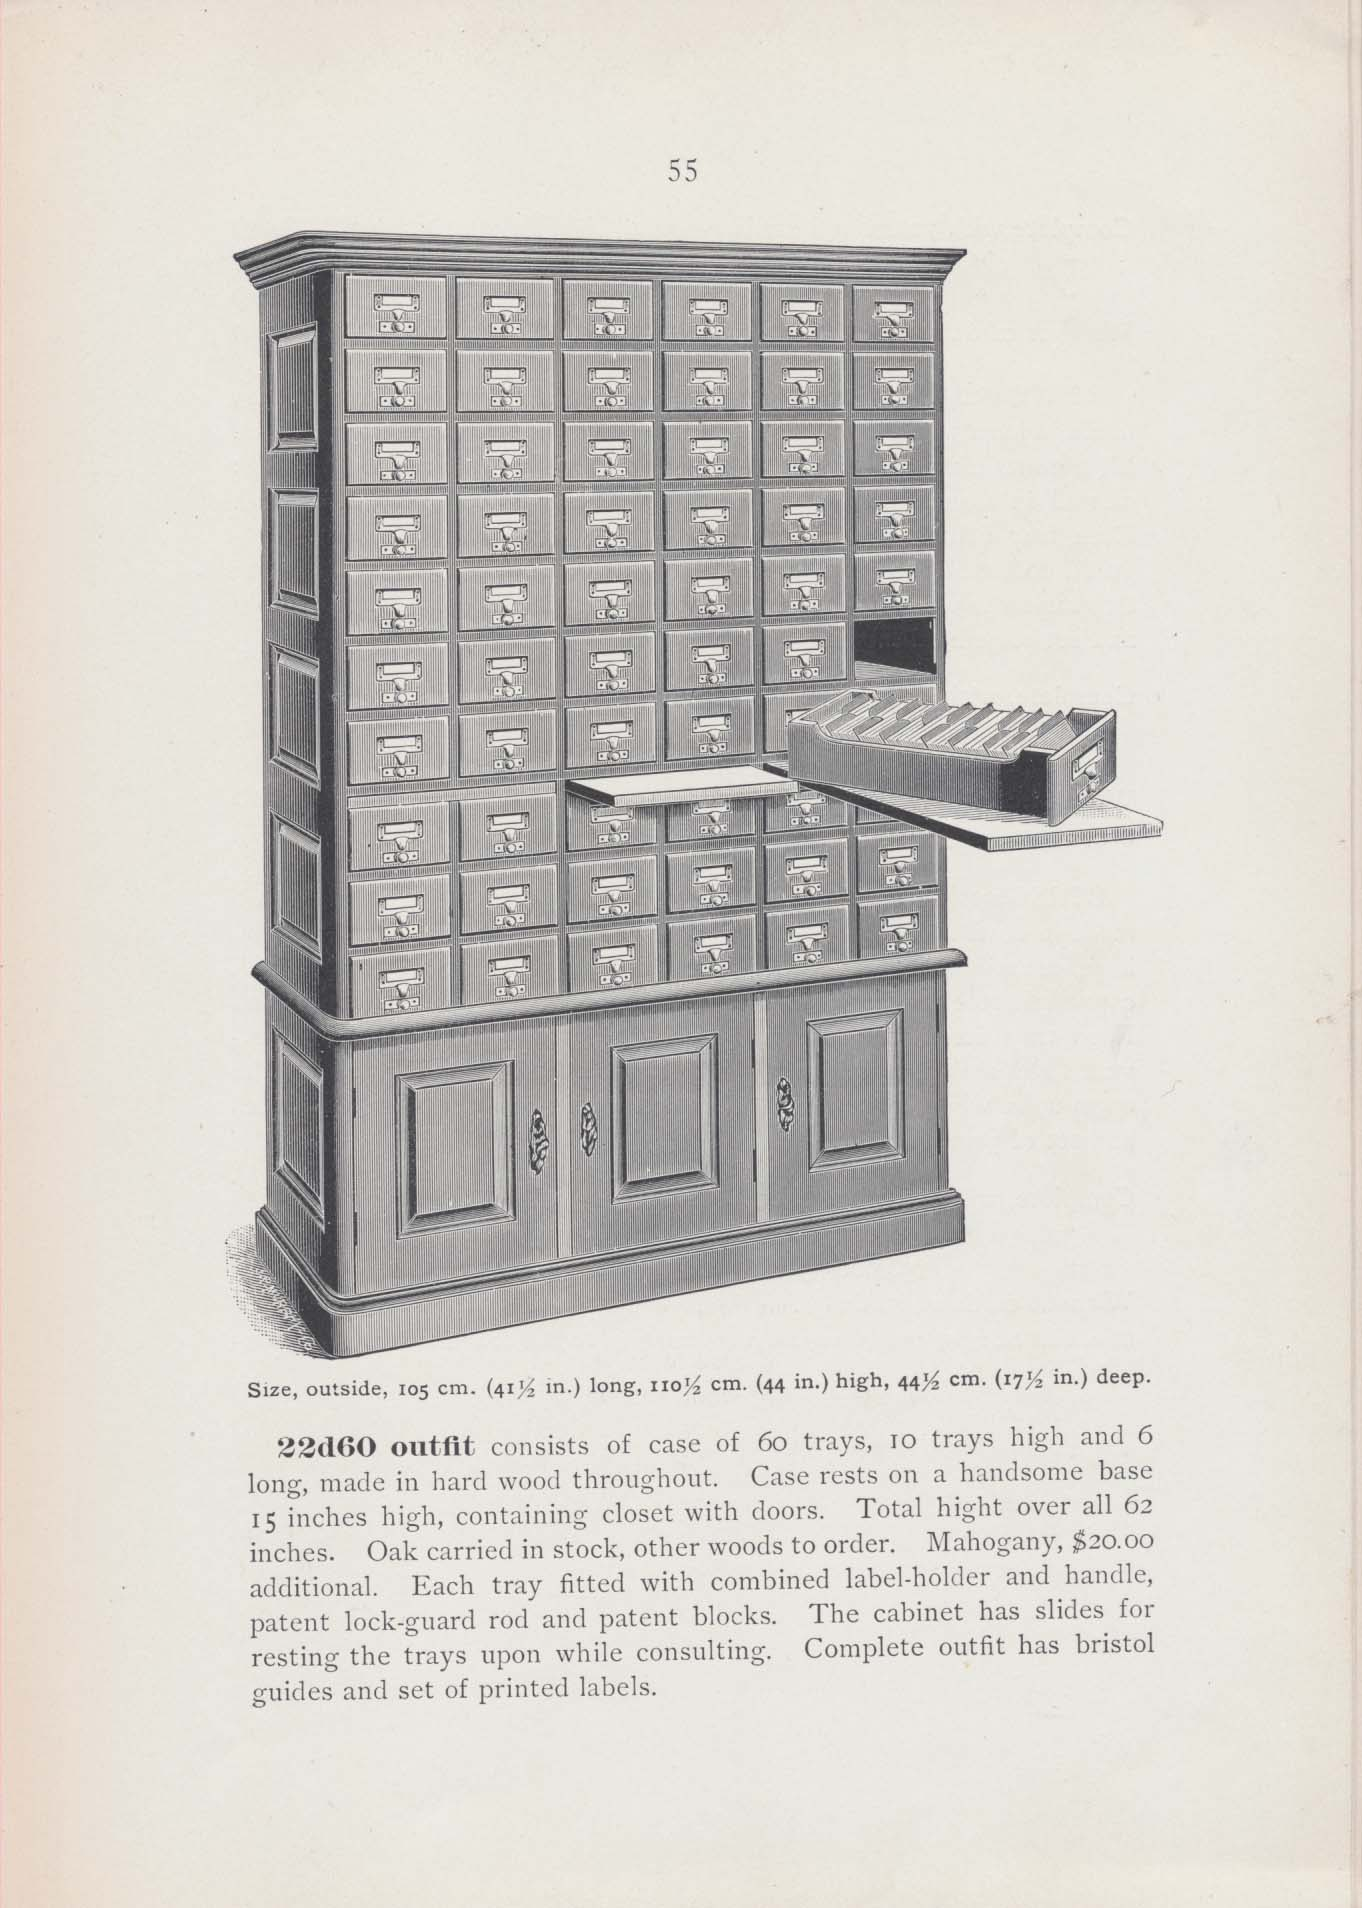 60-tray card catalog with one tray resting on a slide